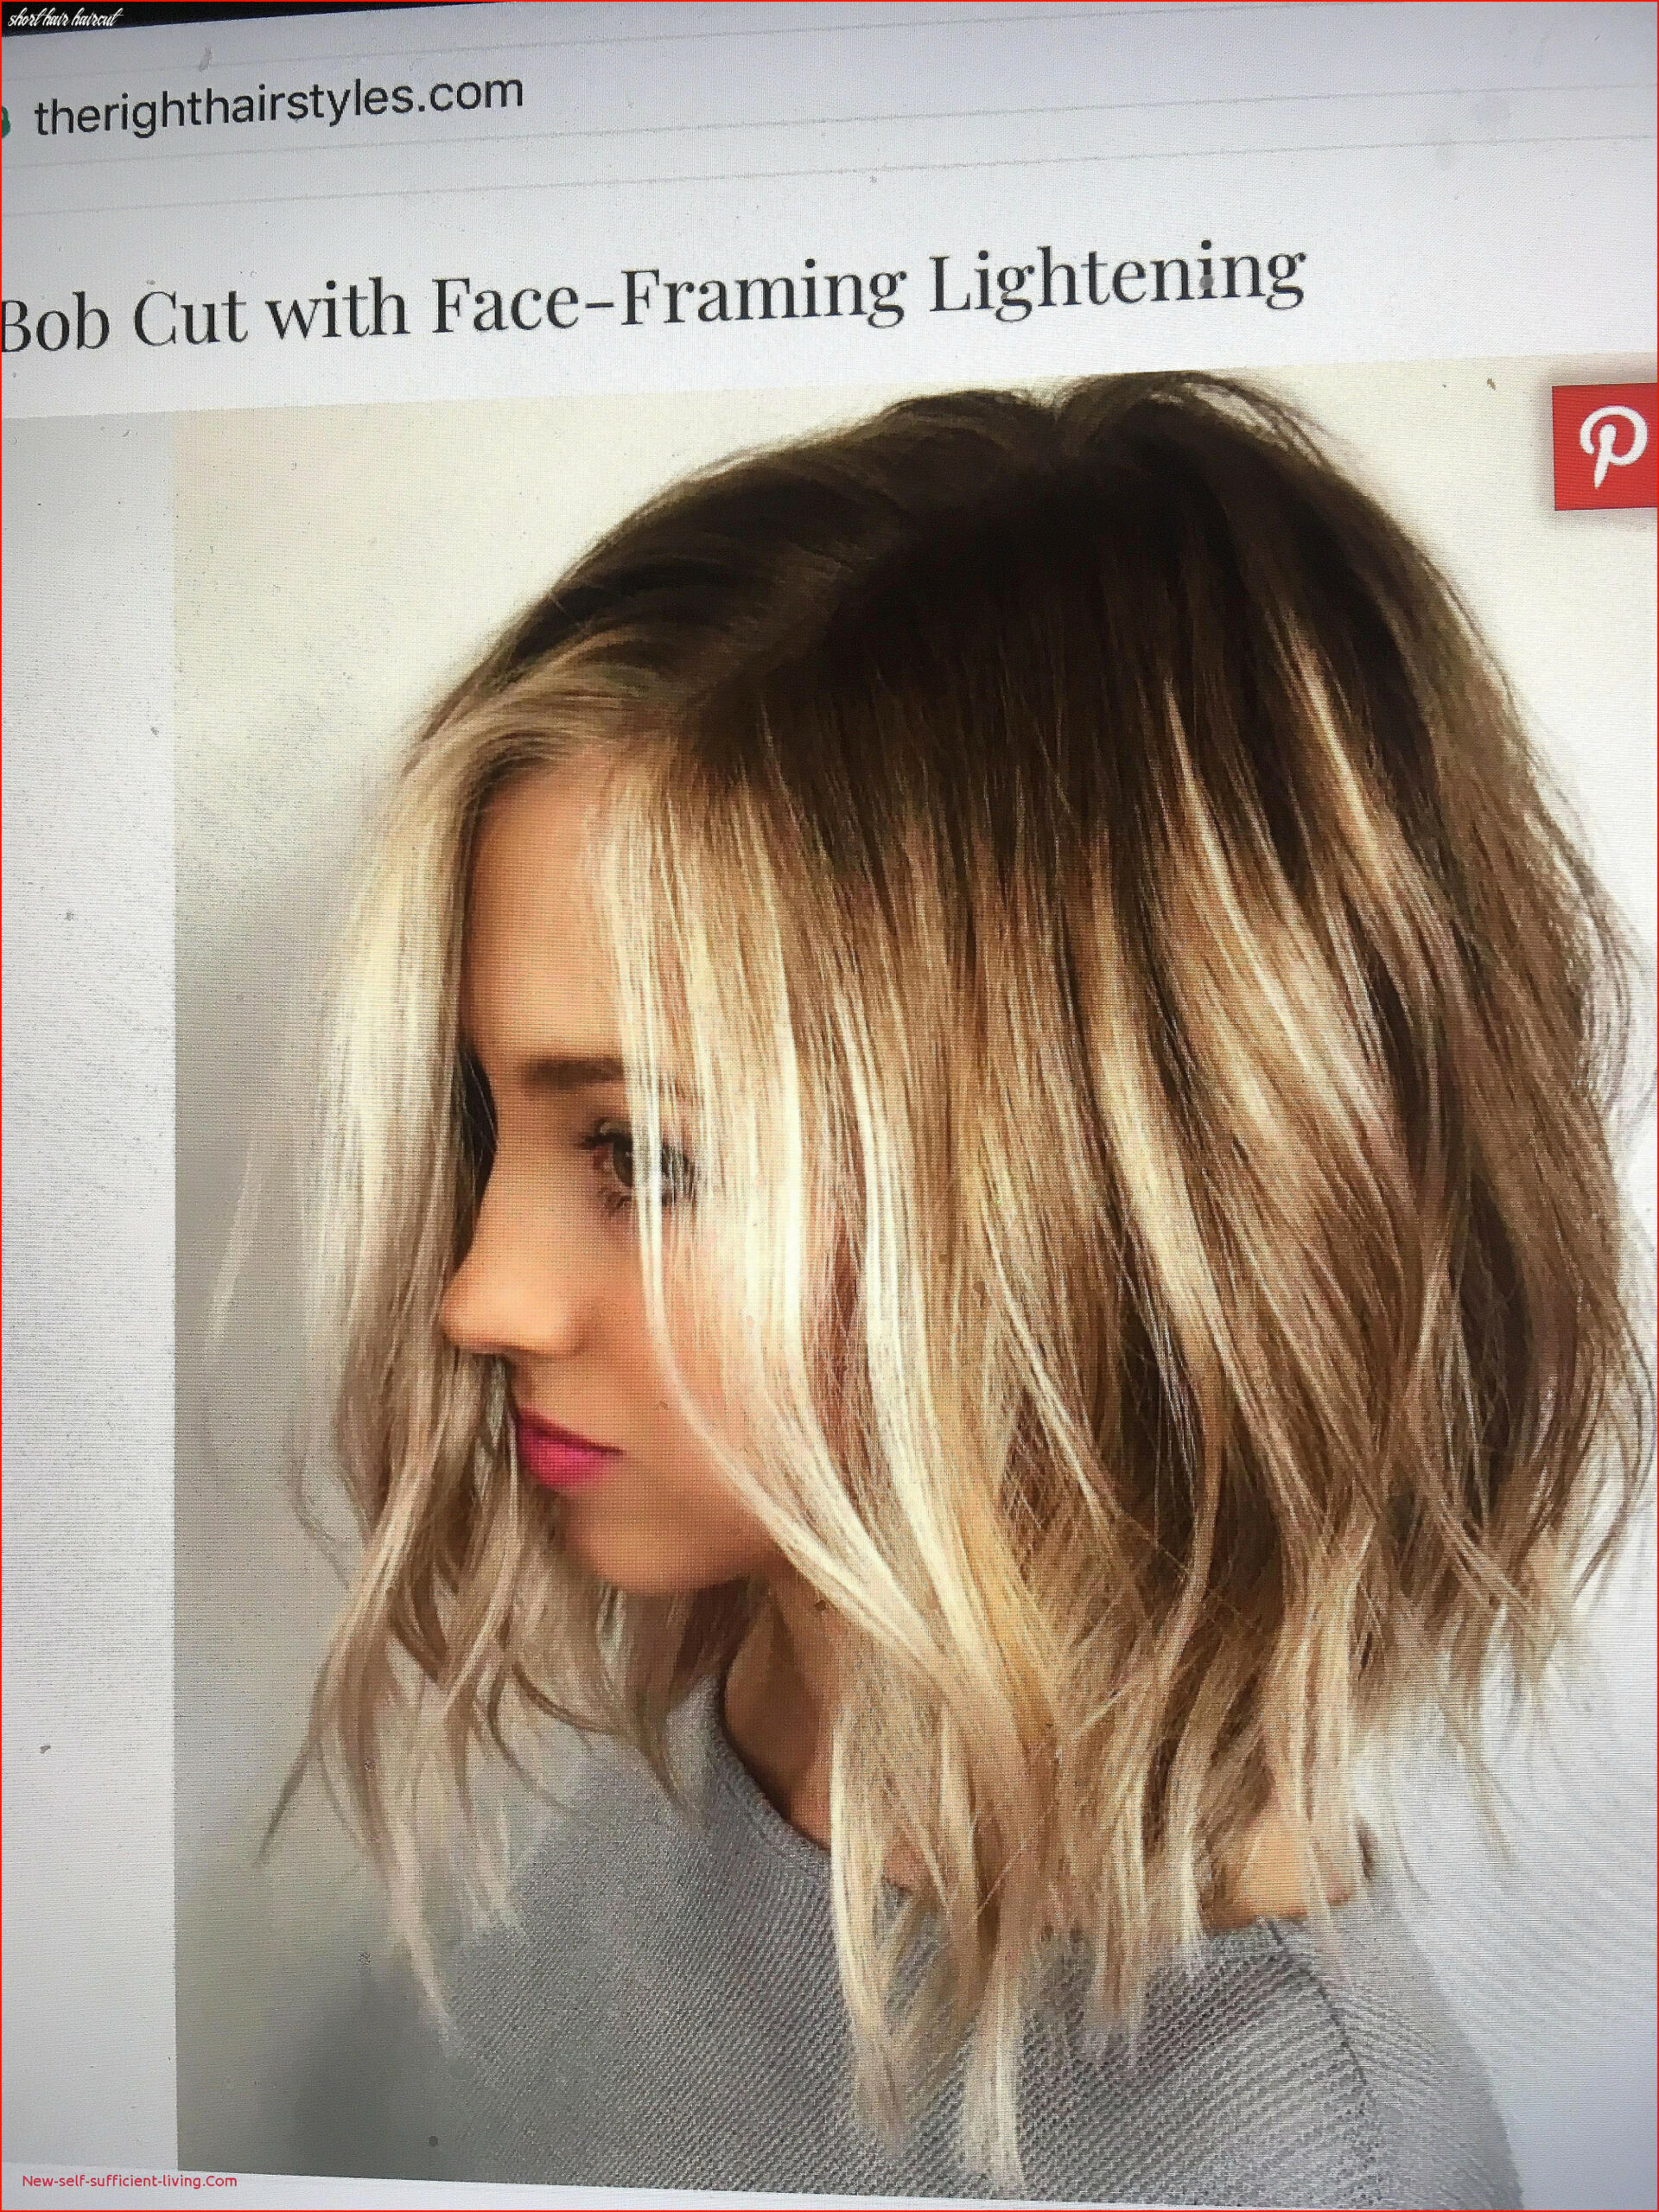 New Haircut Short Hair Gallery Of Haircuts Trends 8 8 ...